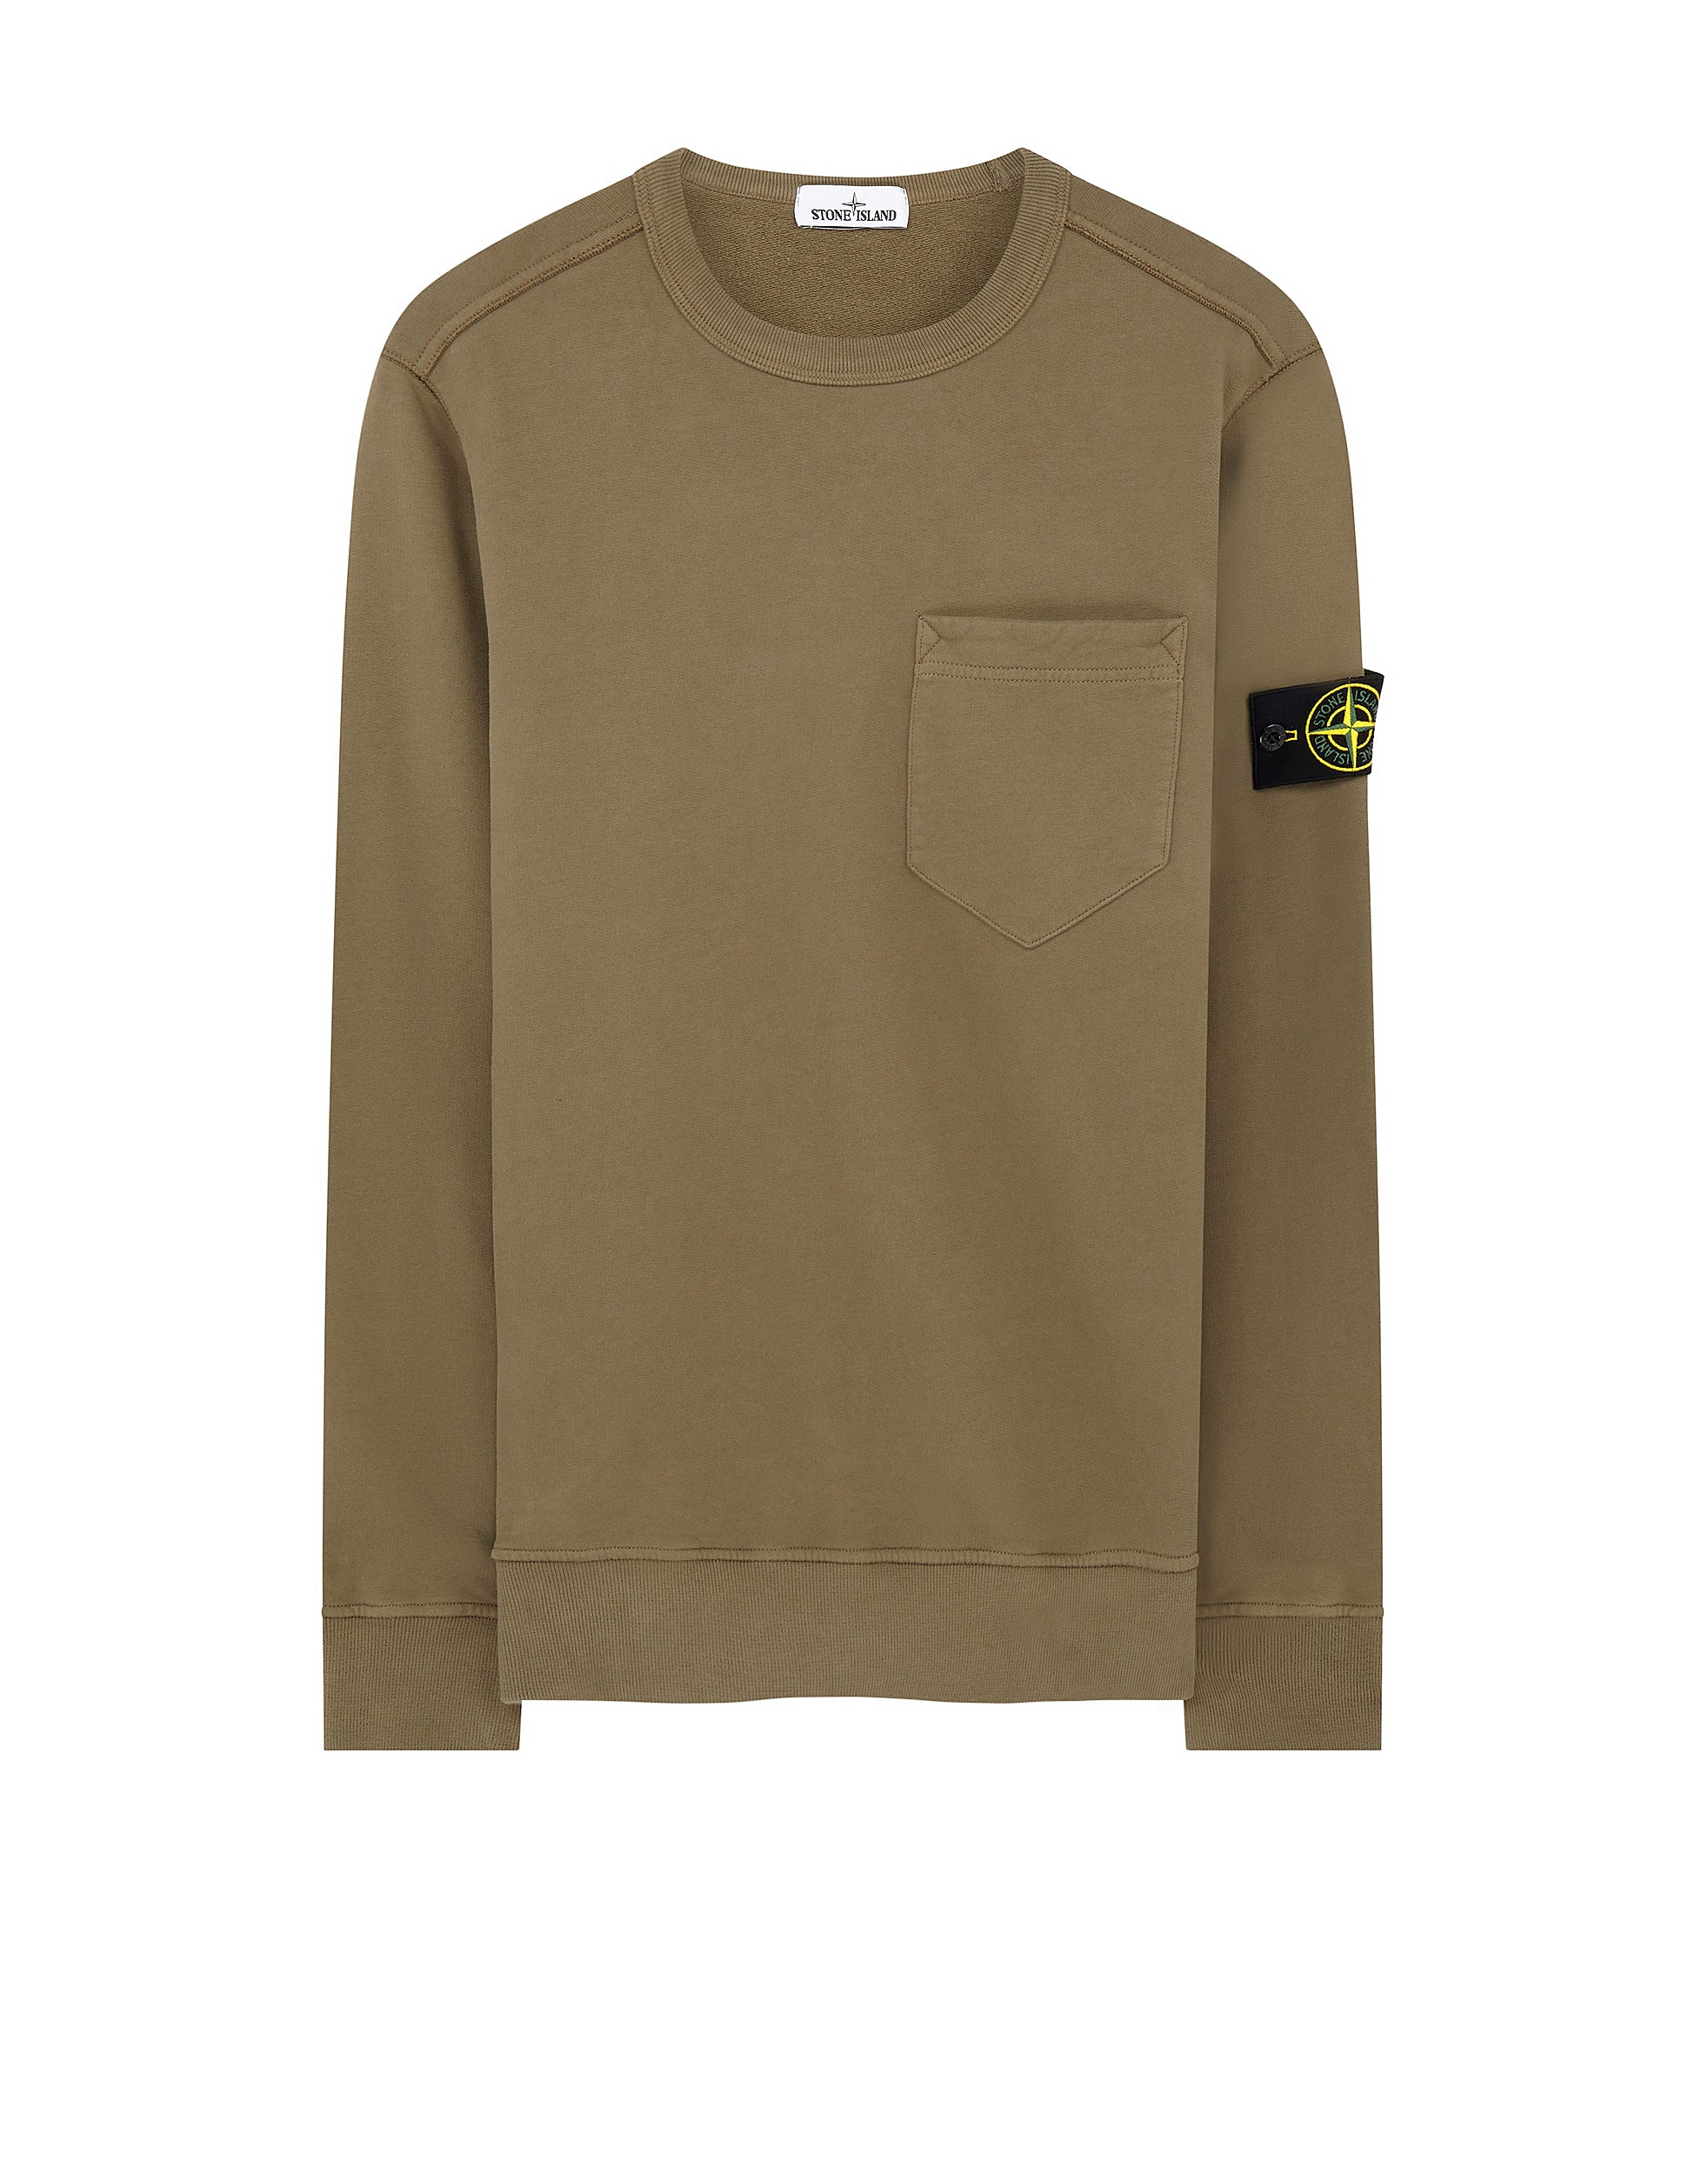 63820 Pocket Sweatshirt in Olive